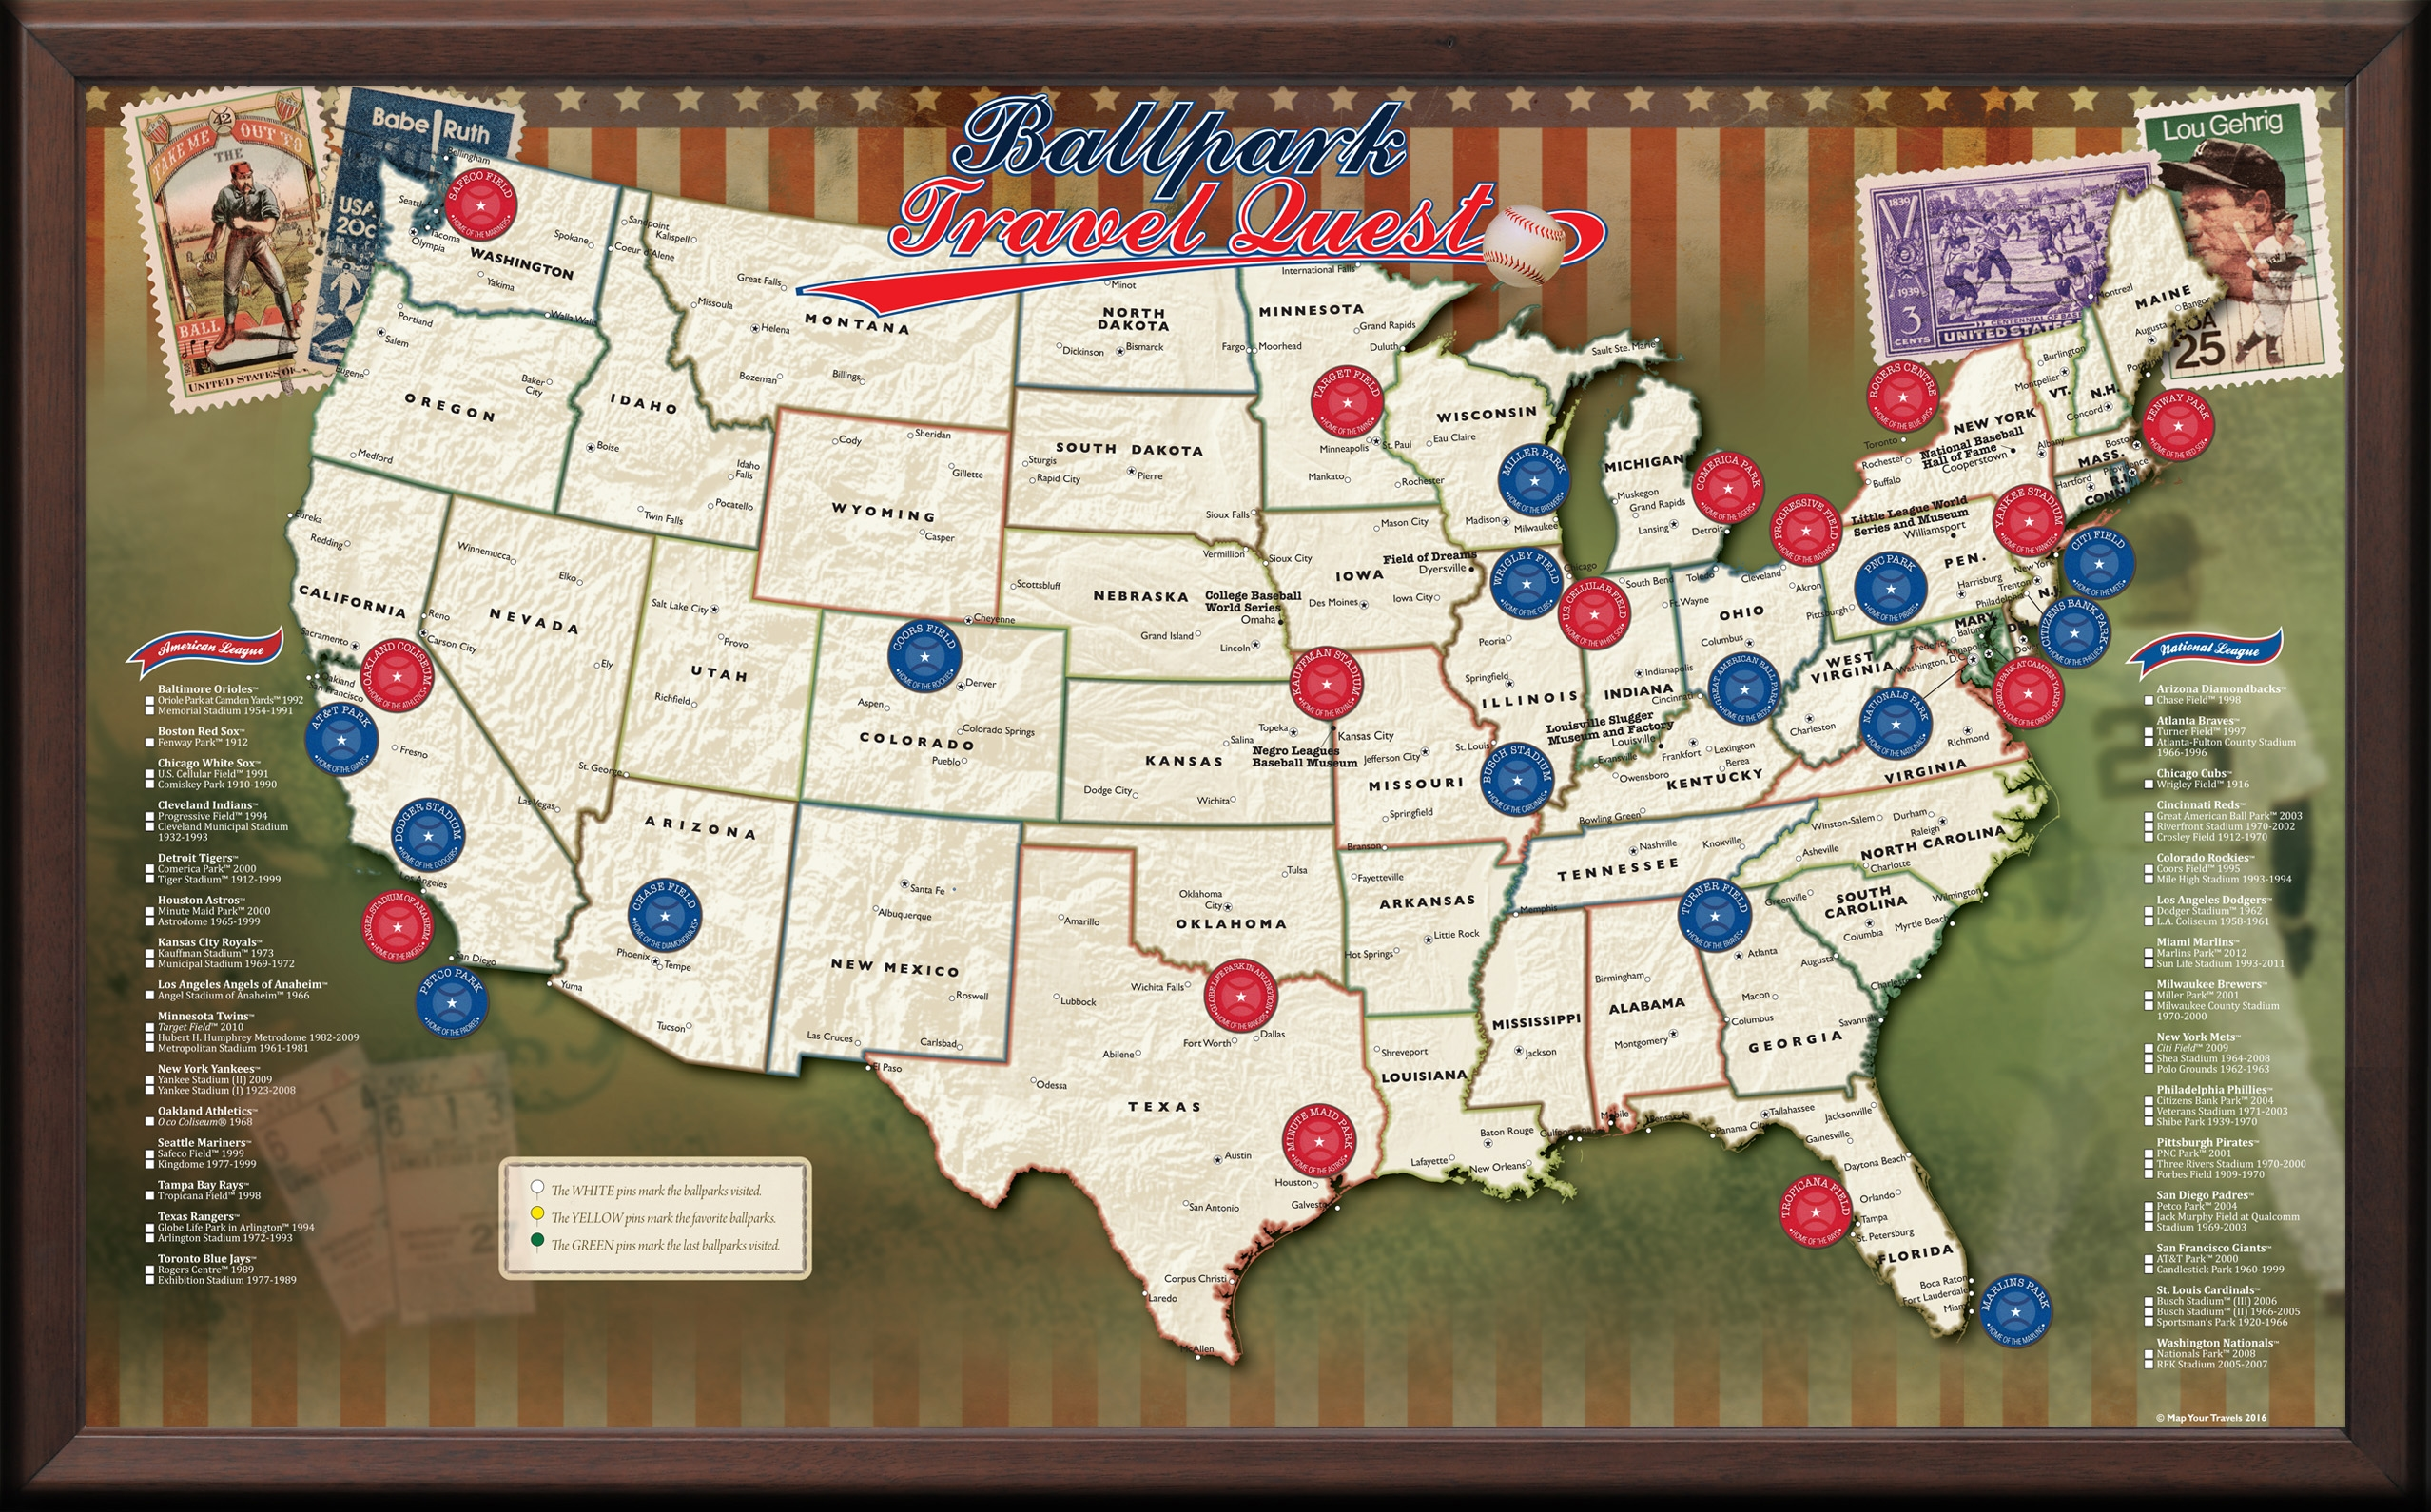 Baseball Stadiums Map USA Baseball Push Pin Map  Framed and Personalized from OnlyGlobes  Baseball Stadiums Map